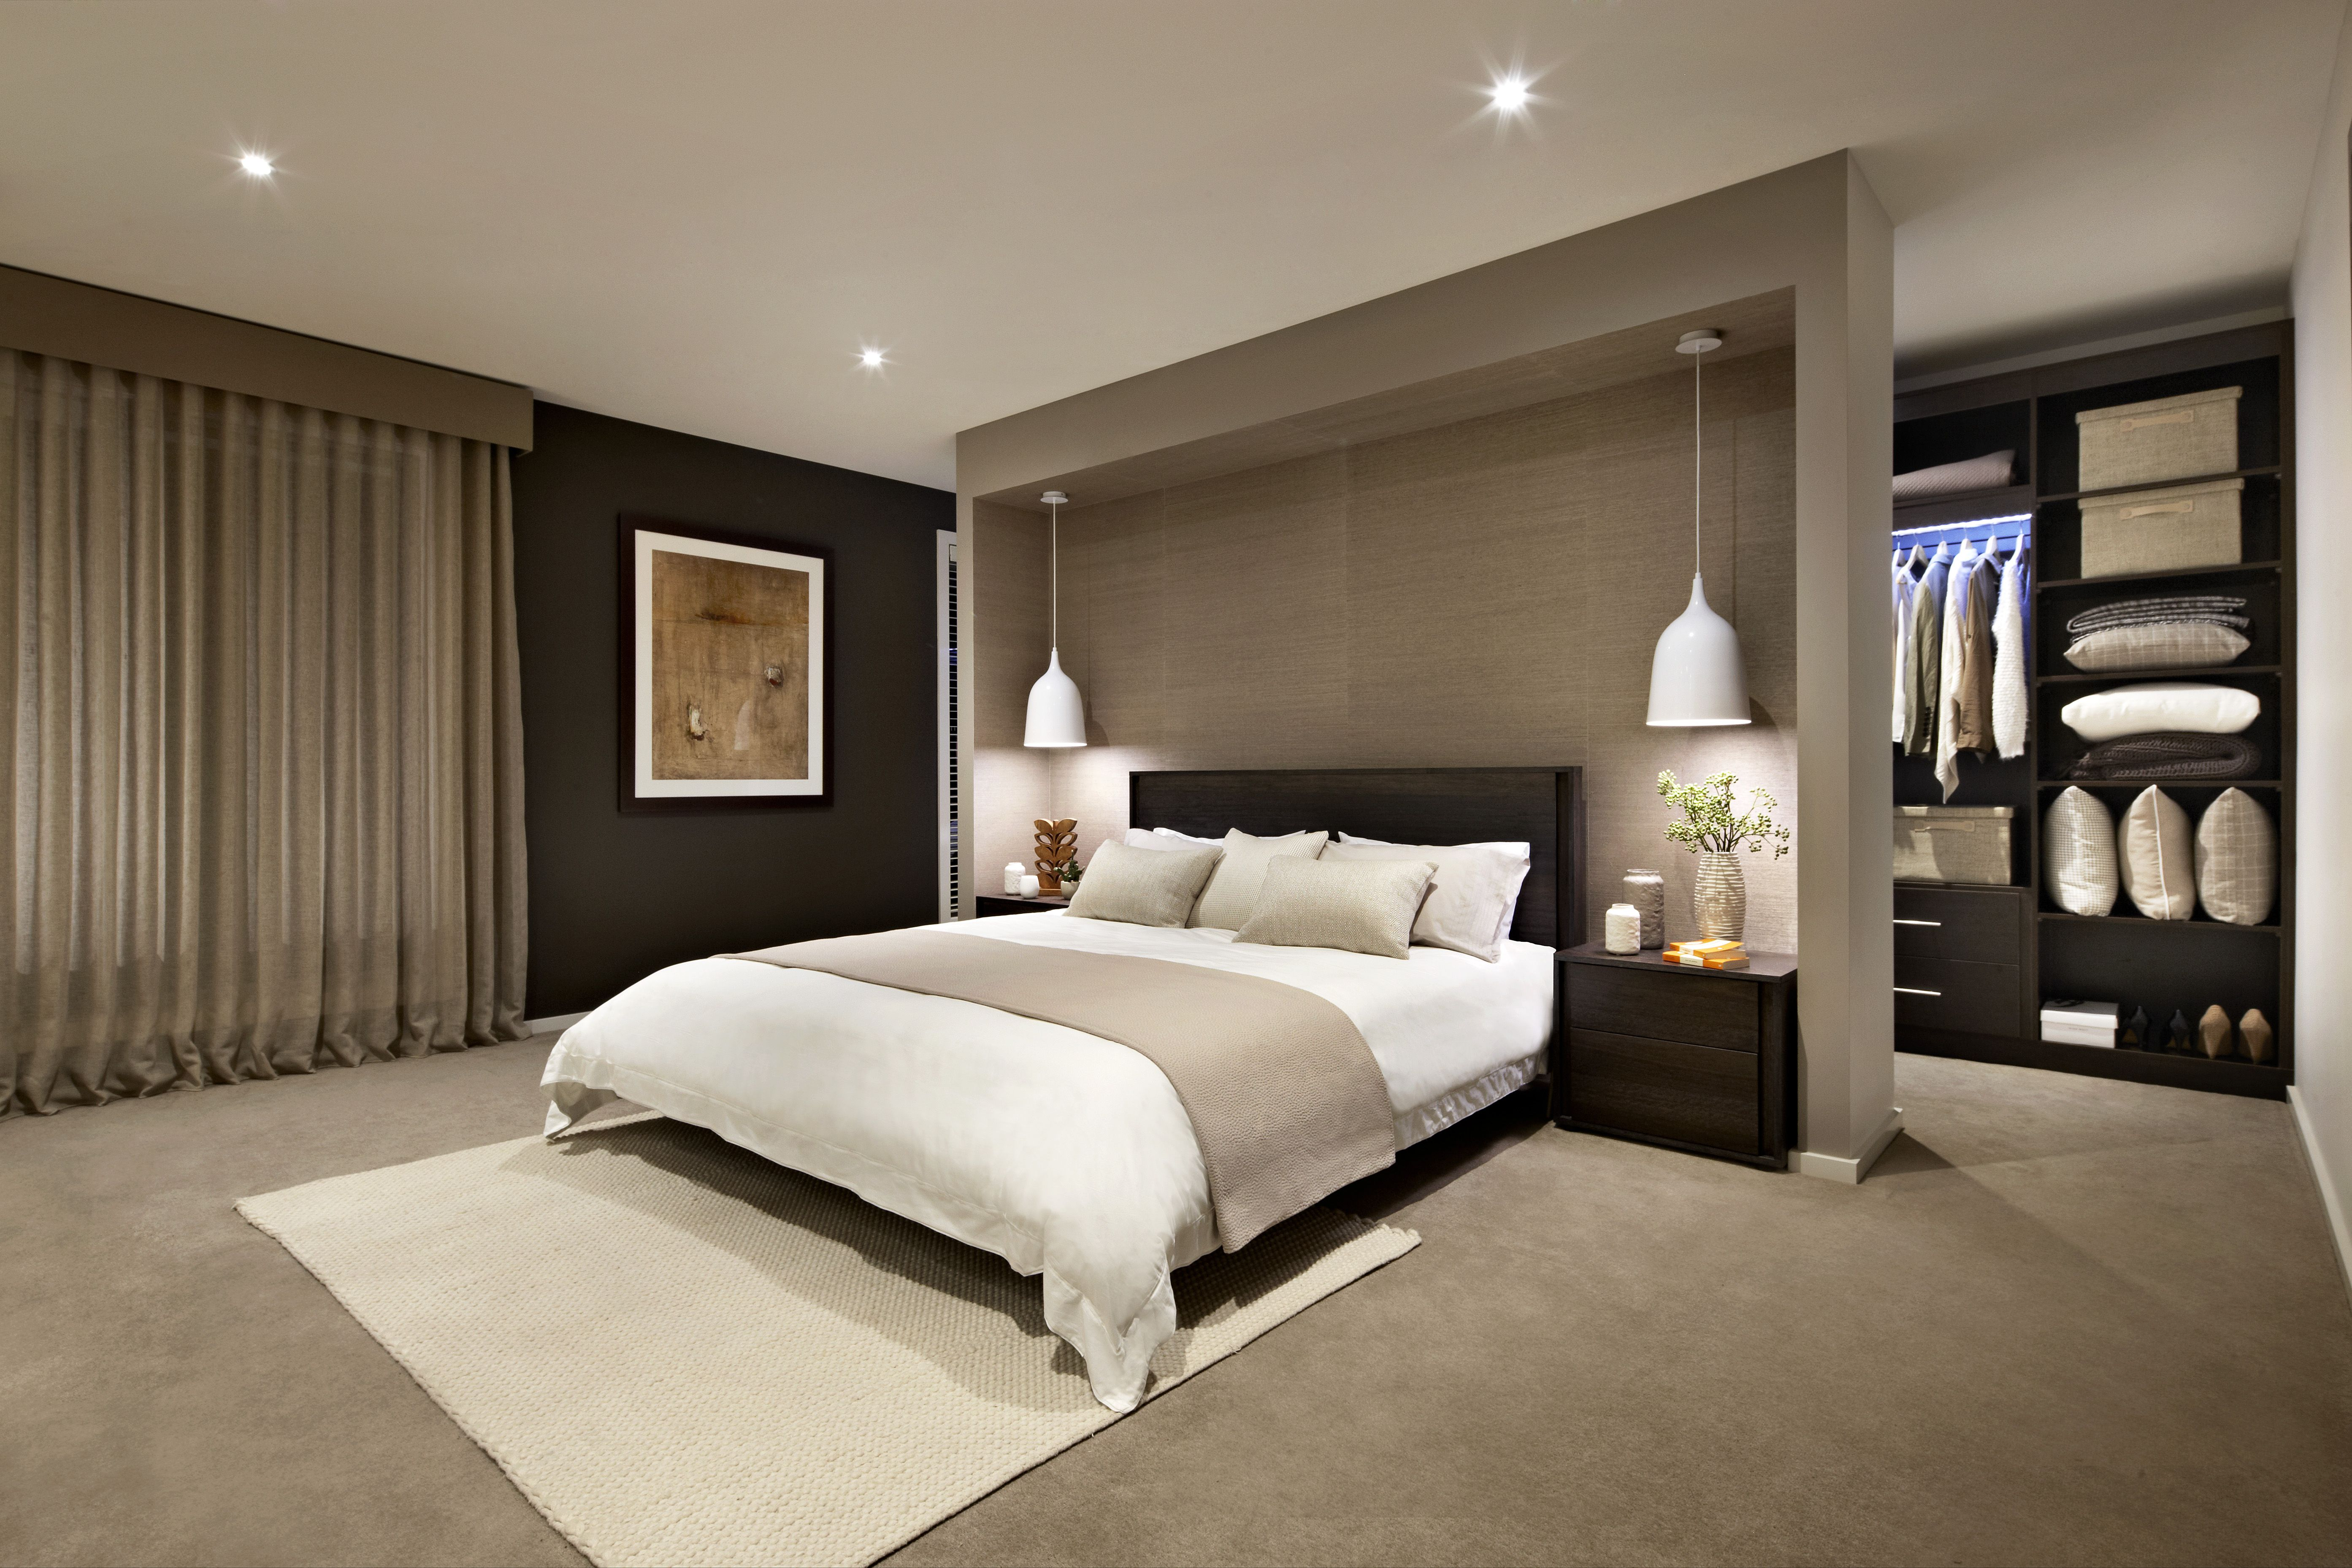 Master bedroom suite decor  King Size Gap bed in Blackbutt timber stained in a charcoal finish